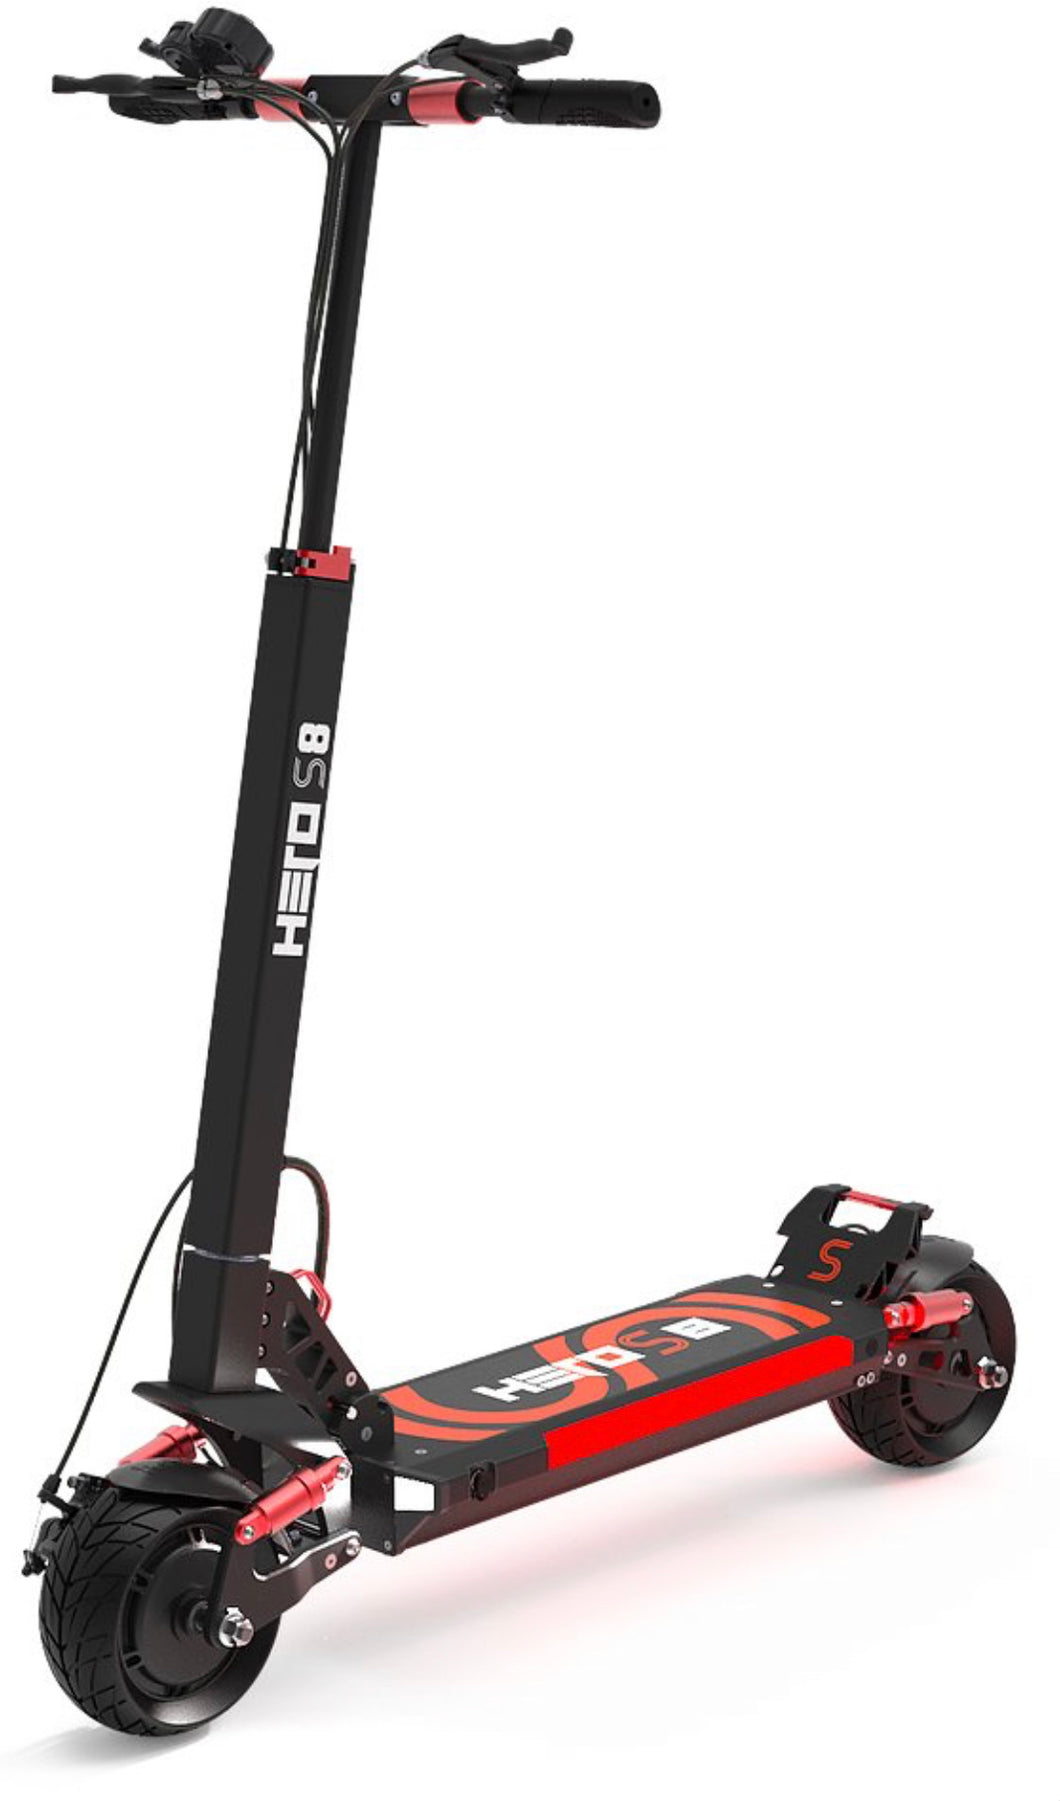 Hero S8 -Electric Scooter 2 year warranty UK Supplier